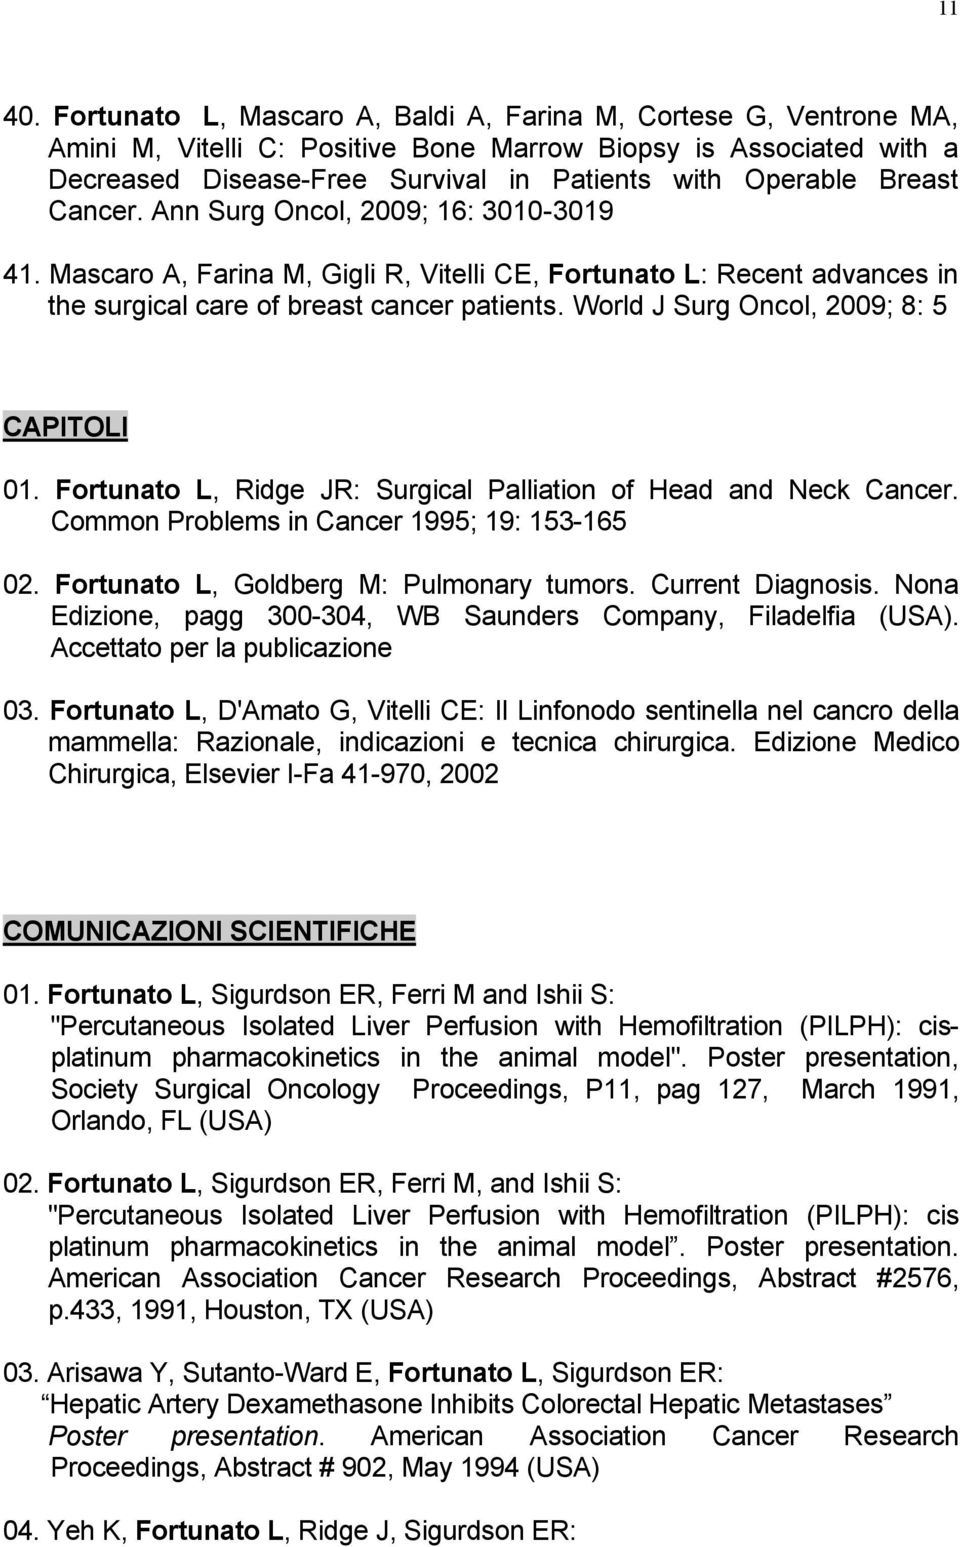 Breast Cancer. Ann Surg Oncol, 2009; 16: 3010-3019 41. Mascaro A, Farina M, Gigli R, Vitelli CE, Fortunato L: Recent advances in the surgical care of breast cancer patients.